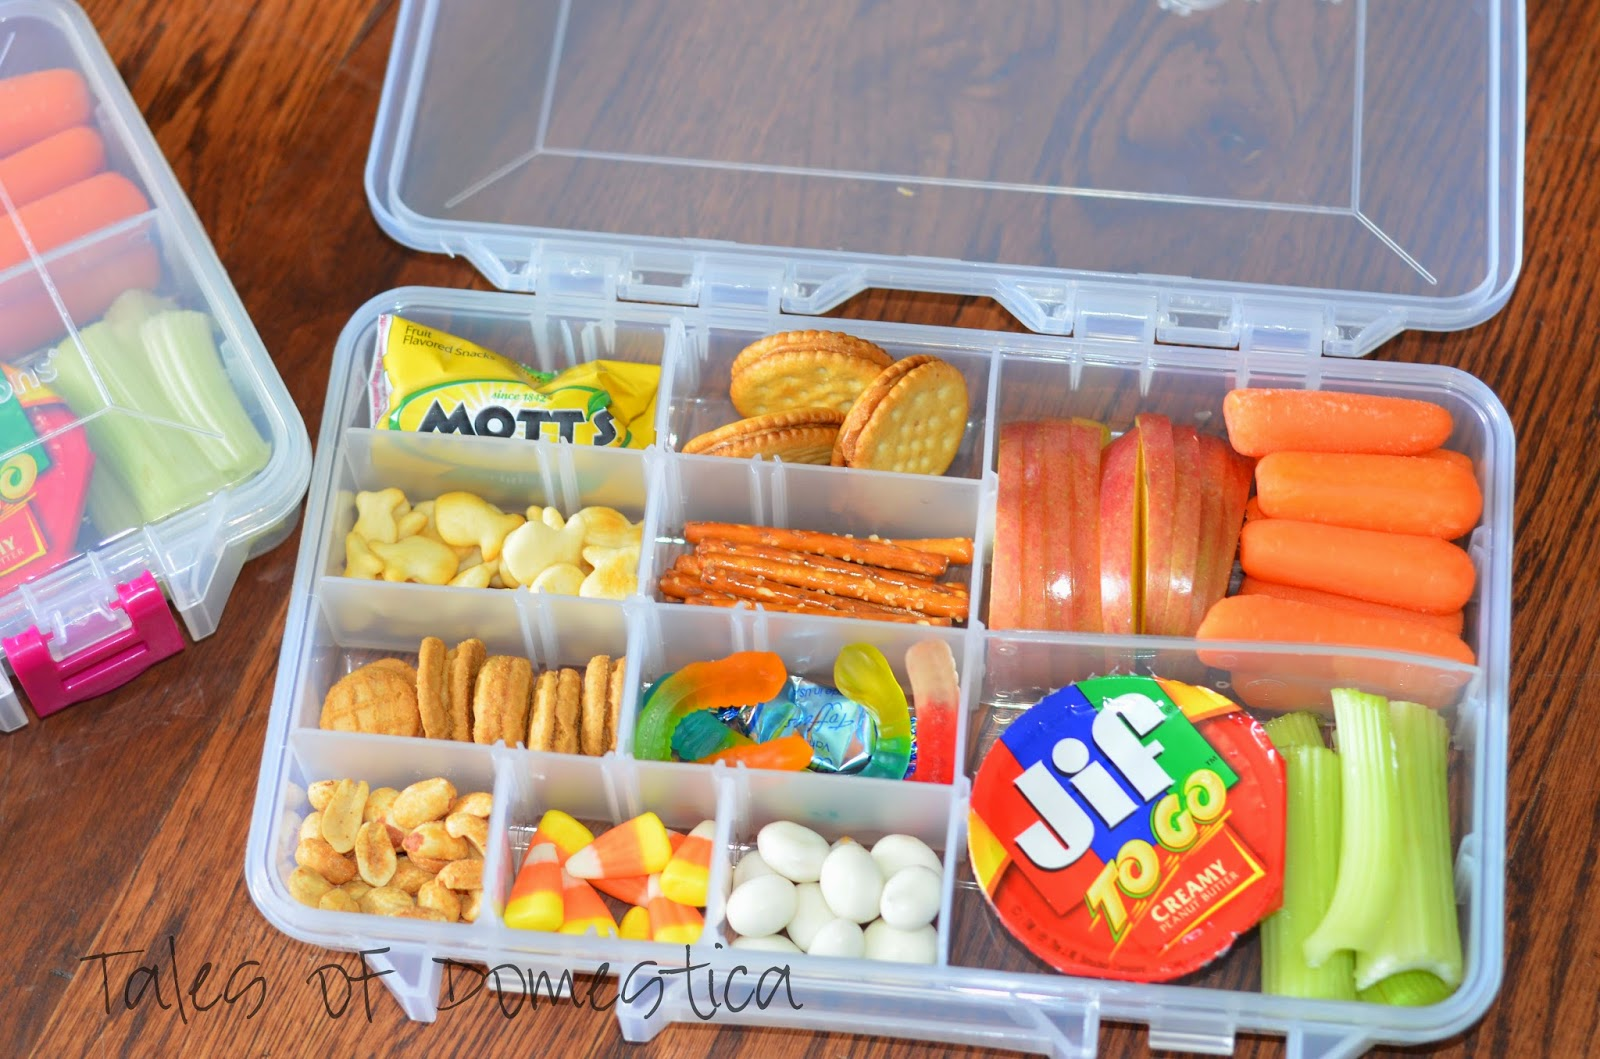 My Last Trip Was A Five Hour Drive With Kids Solo I Tried The Suggested Snack Box And It Hit Both LilMiss Loved